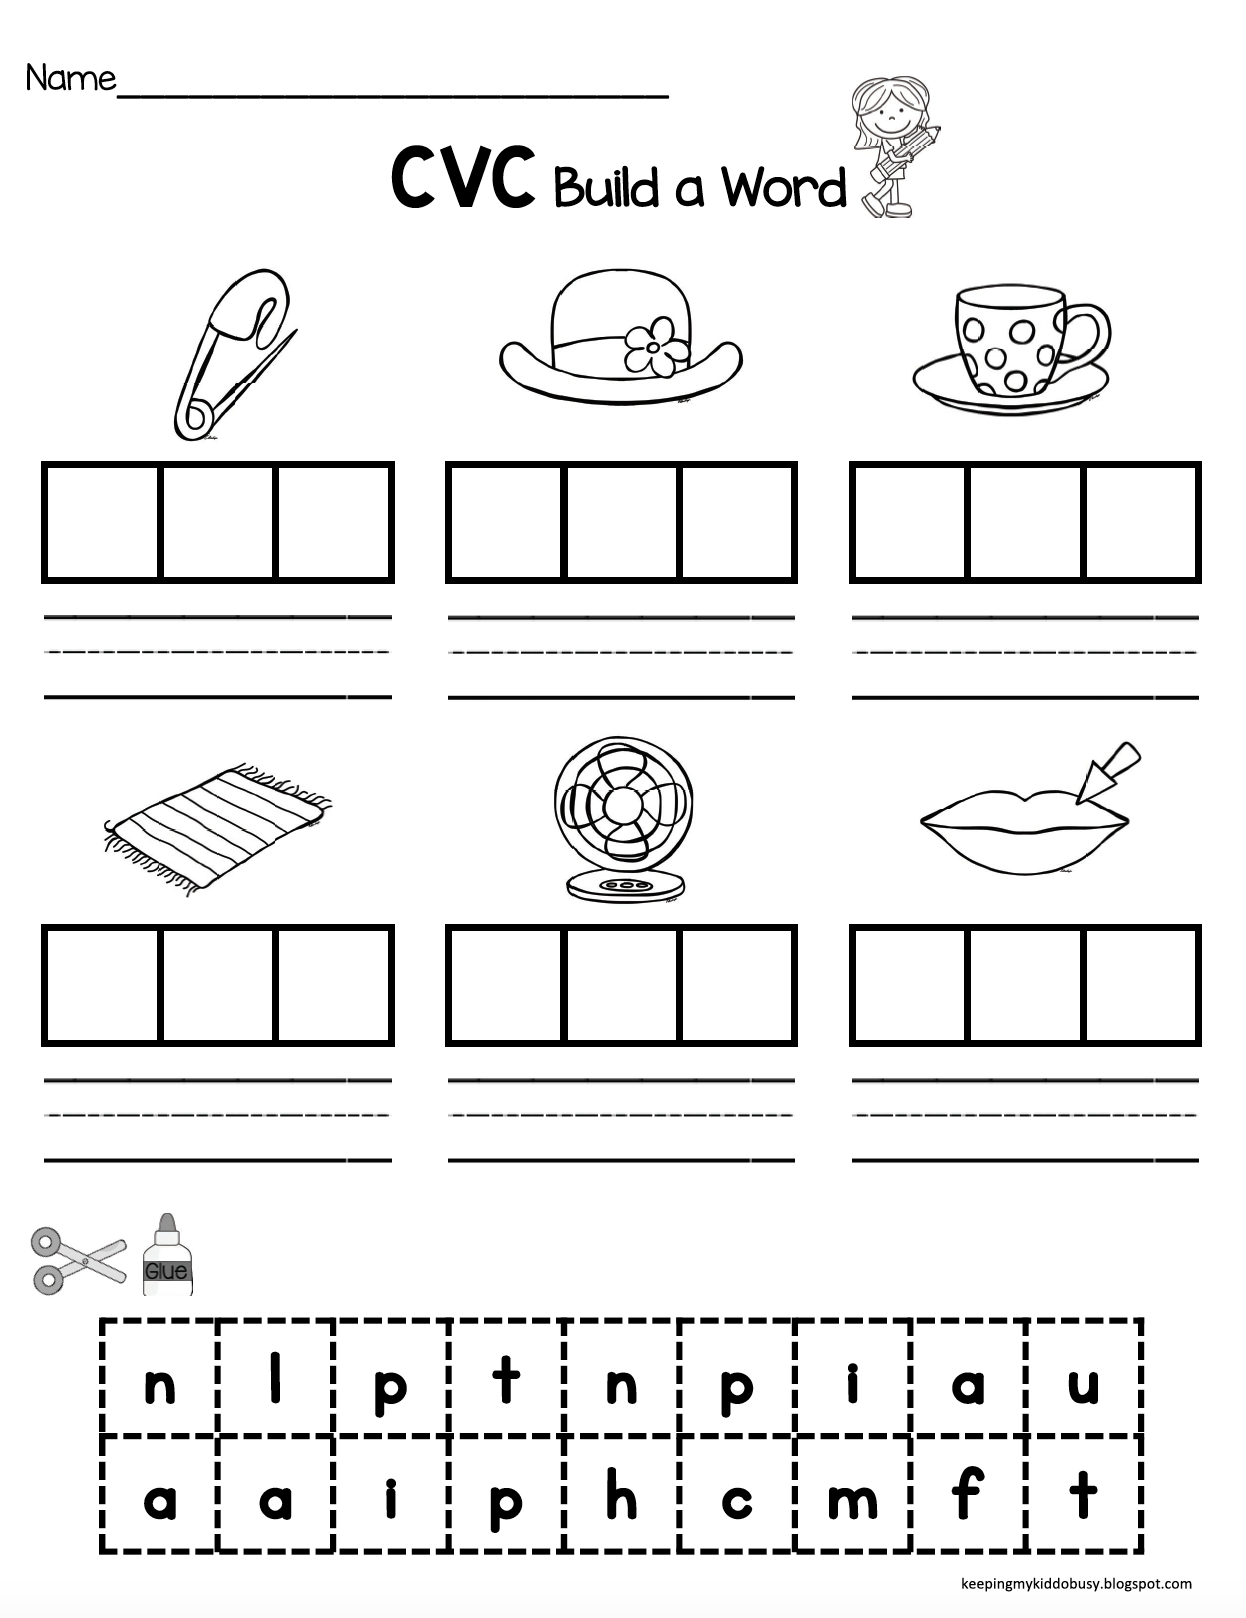 Worksheets Cvc Worksheet cvc words kindergarten pinterest literacy centers worksheet fun and easy way to practice center or cut paste kindergart